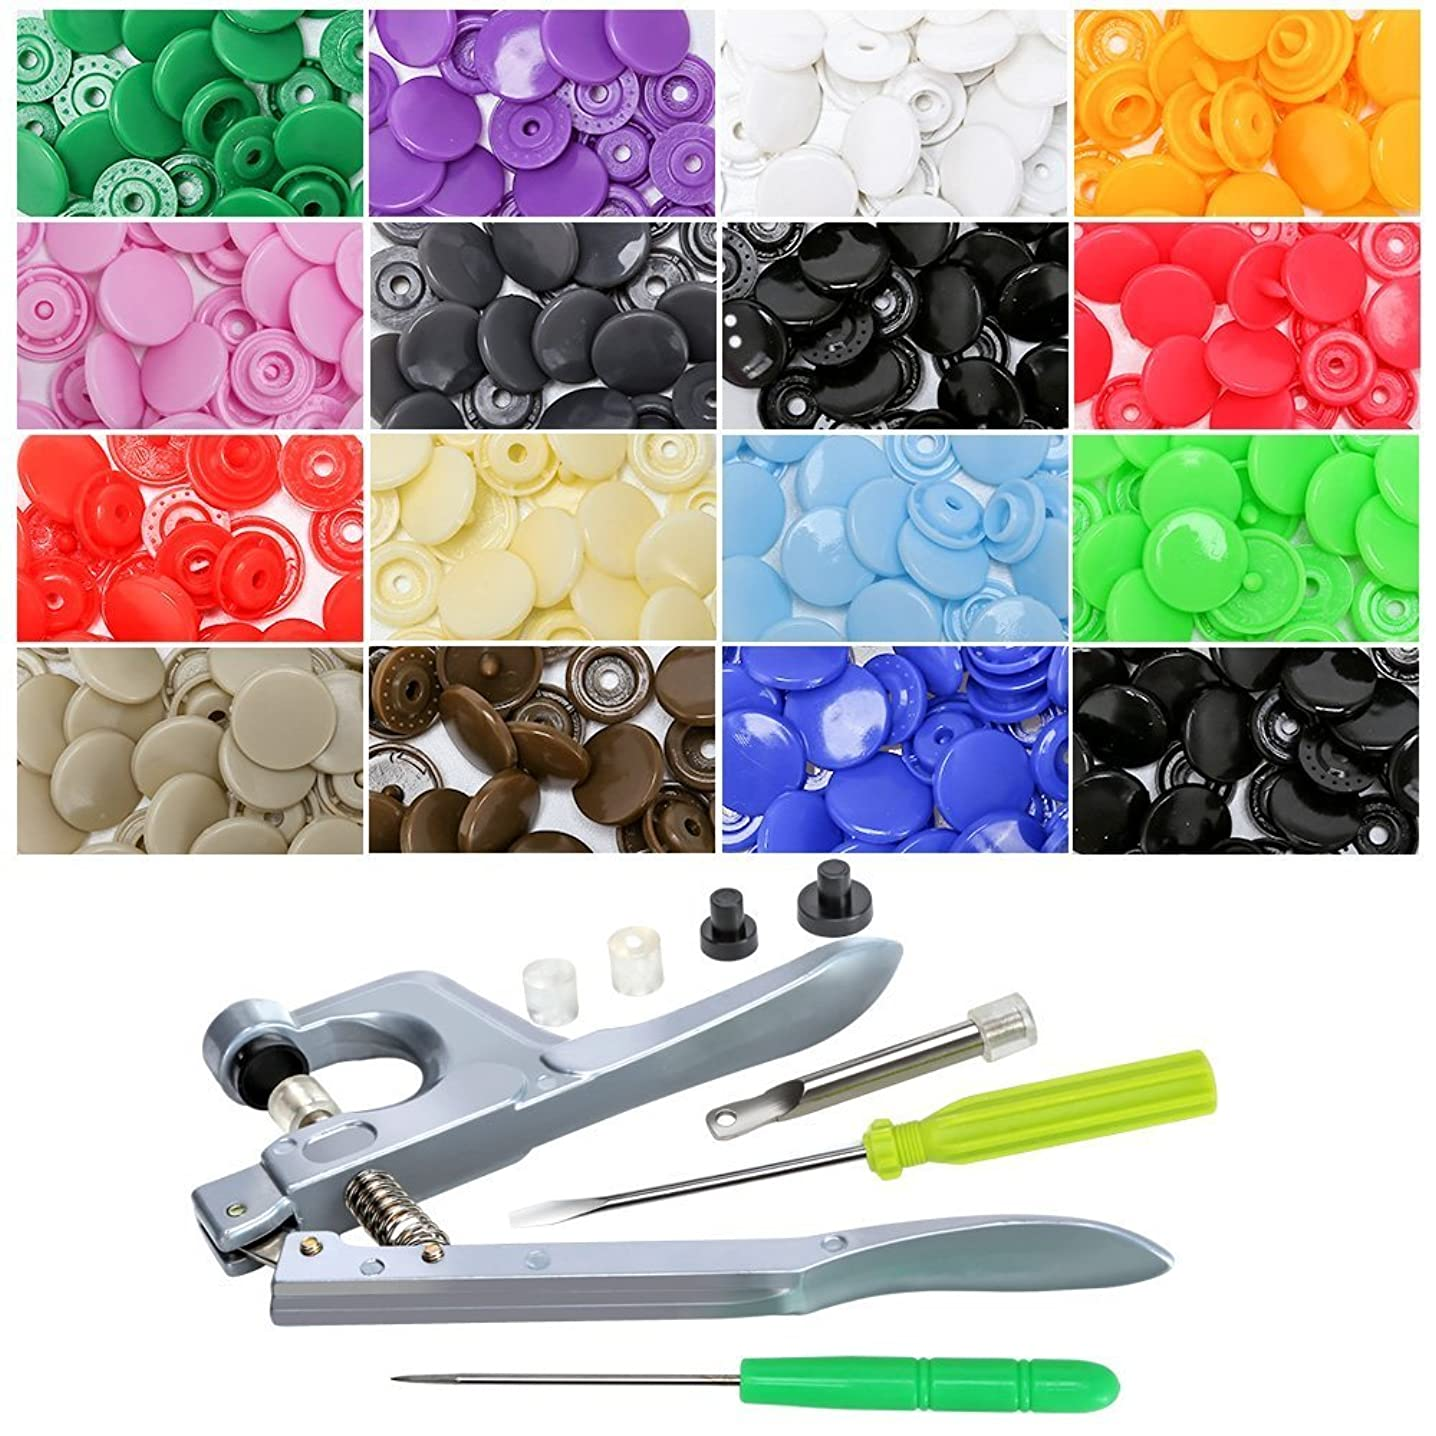 World 9.99 Mall Buttons?Snap?and?Snap?Pliers?Set, 150Pcs?T3?T5?T8??Professional-Grade?Baby?Clothing?Snaps?with?15-Color?and?Snap?Starter?for?Sewing?and?Crafting?and?for?Bibs?Cloth?Diapers?Clothing